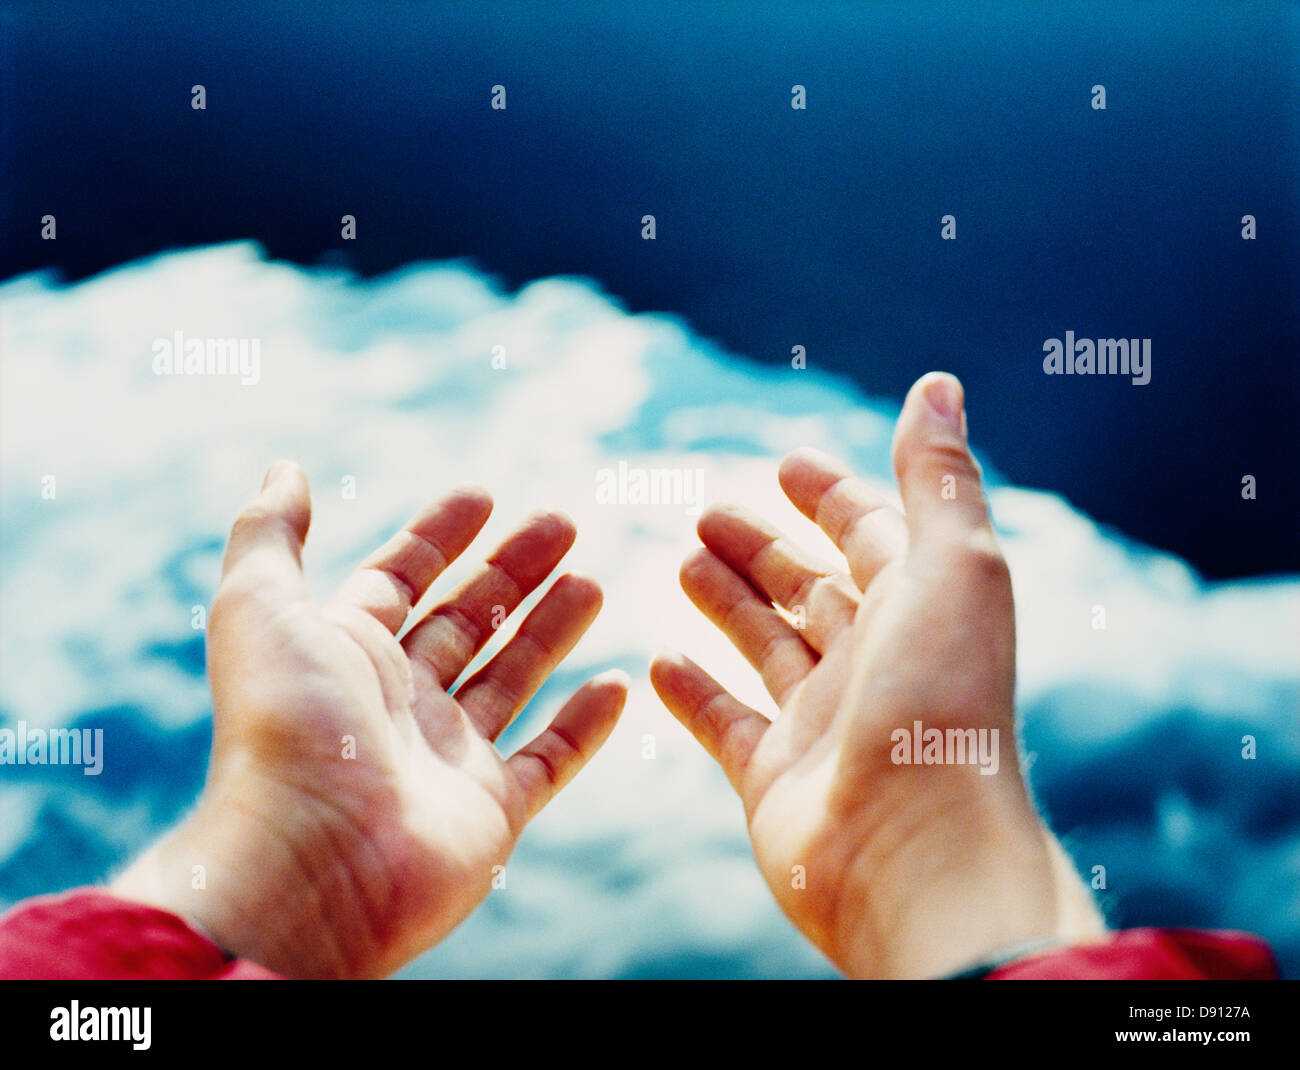 Hands reaching towards the sky. - Stock Image